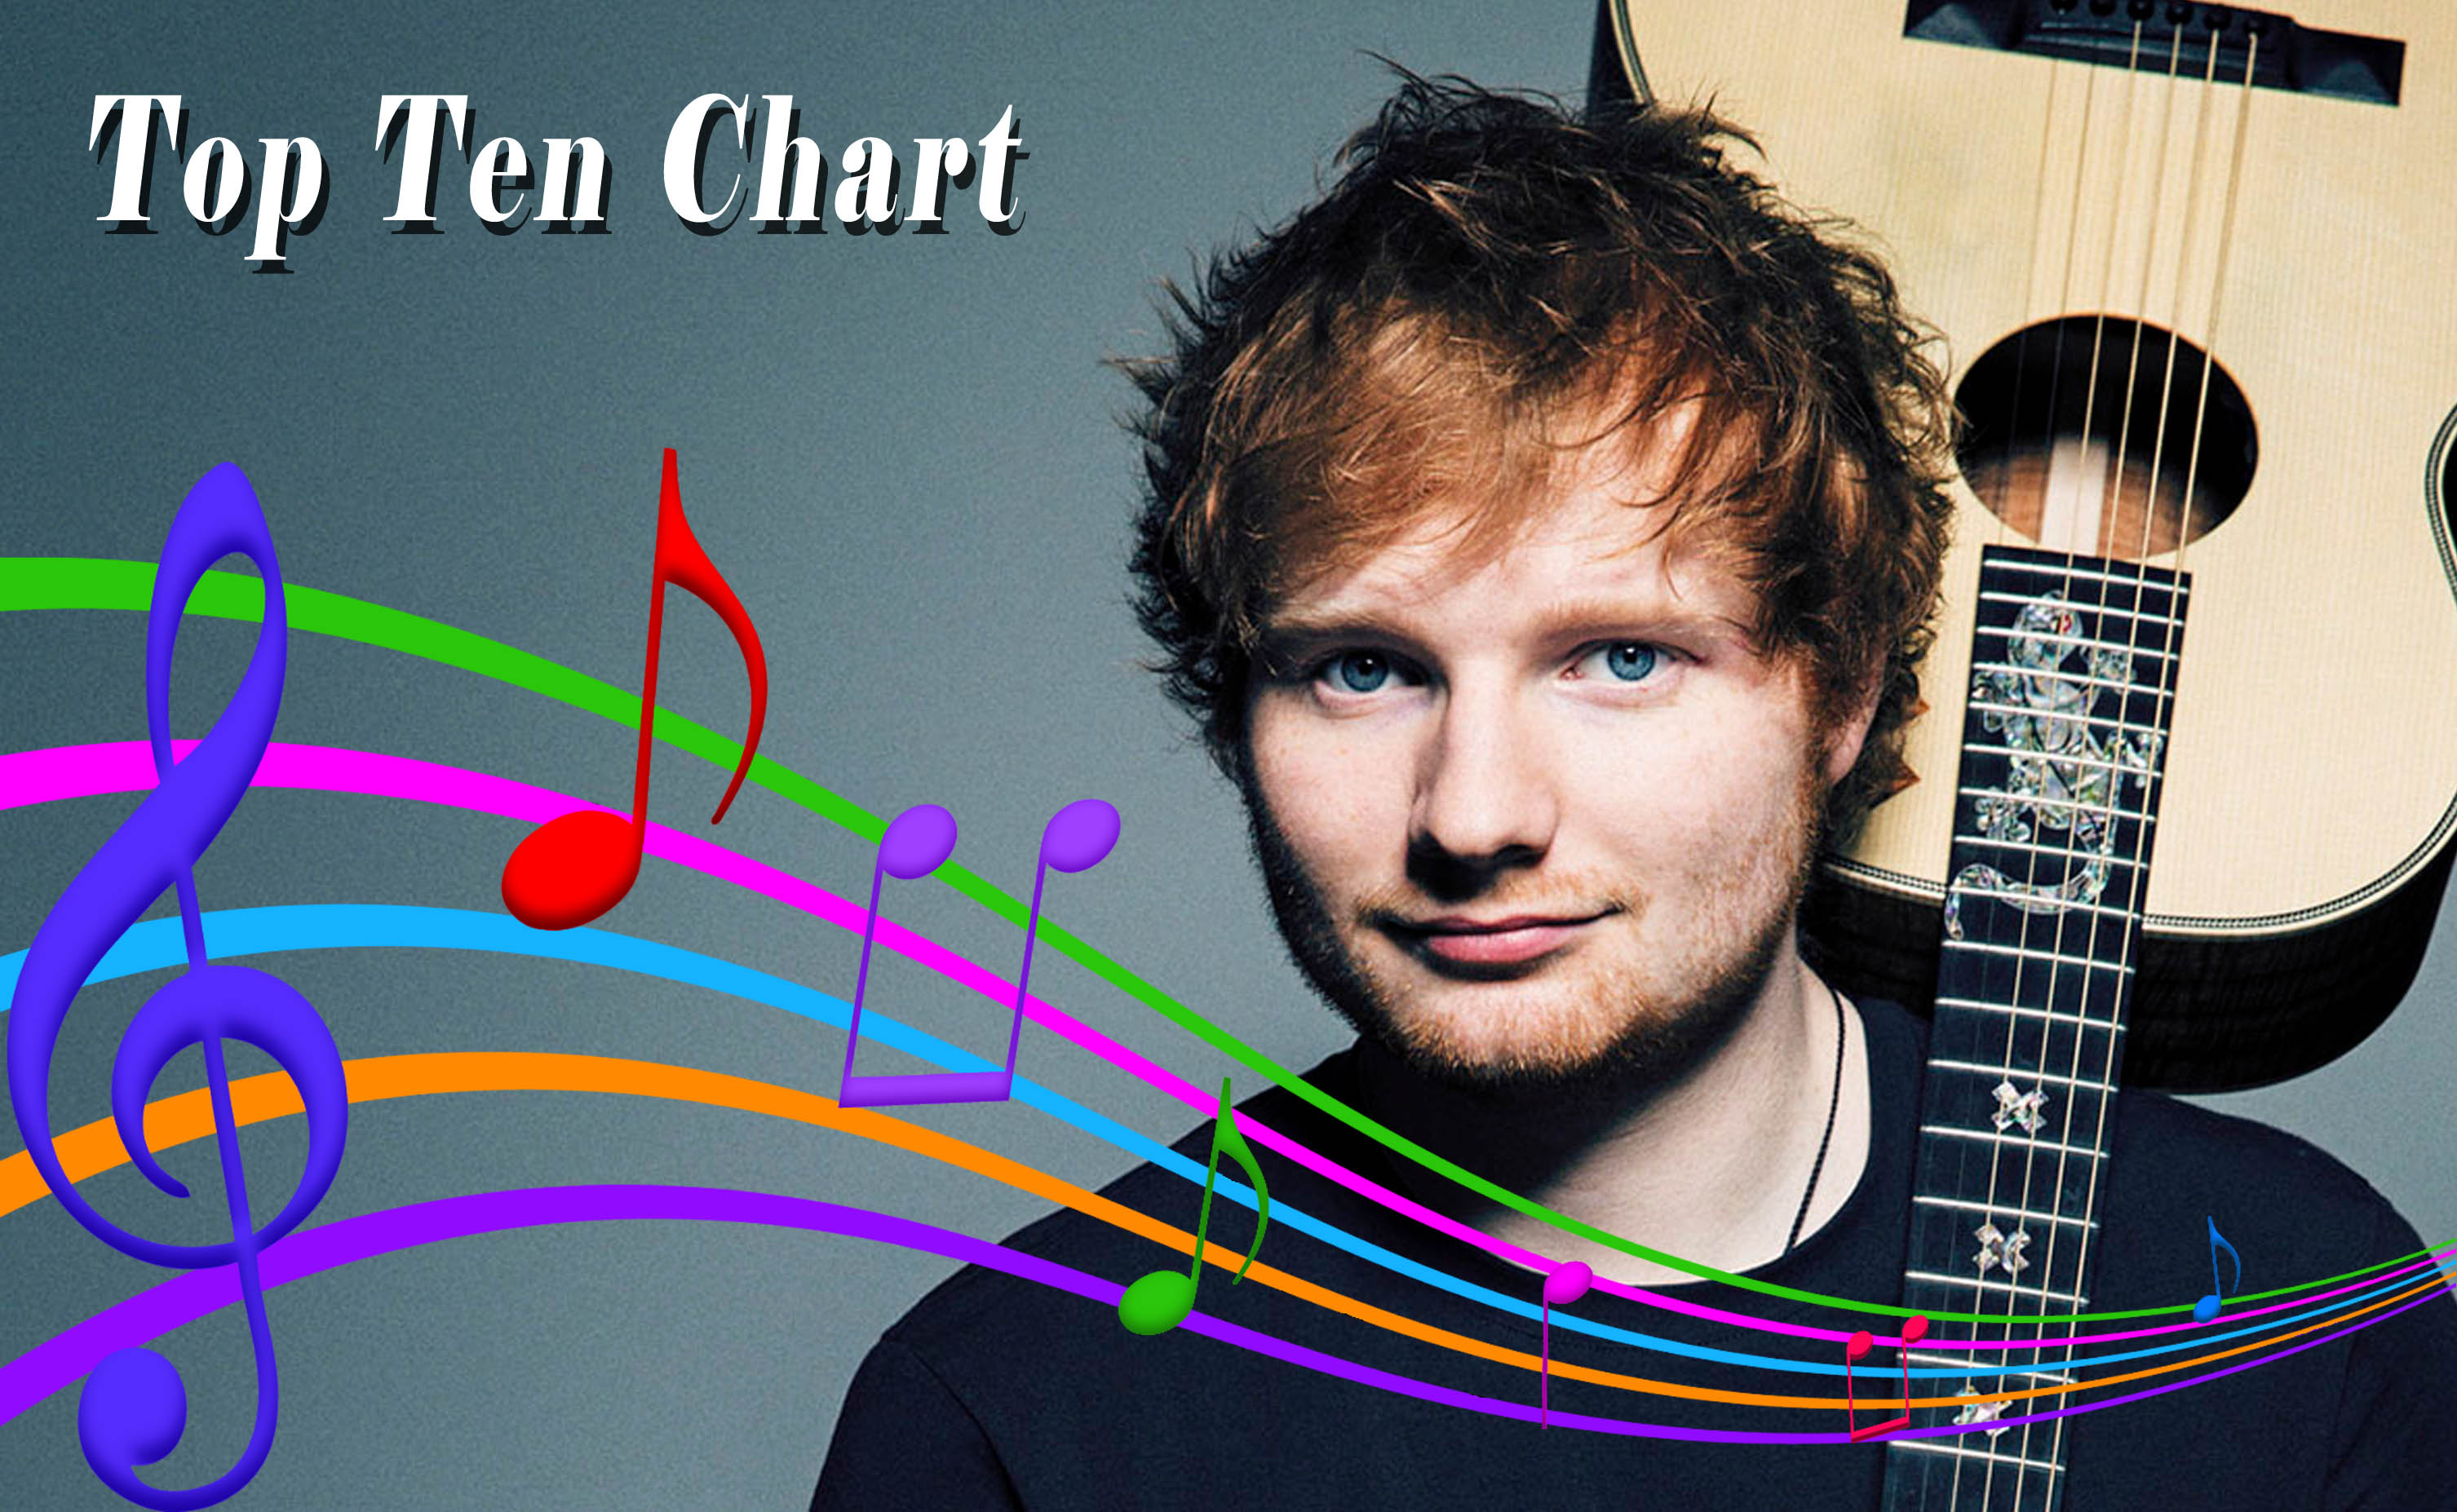 ed sheeran, top ten chart